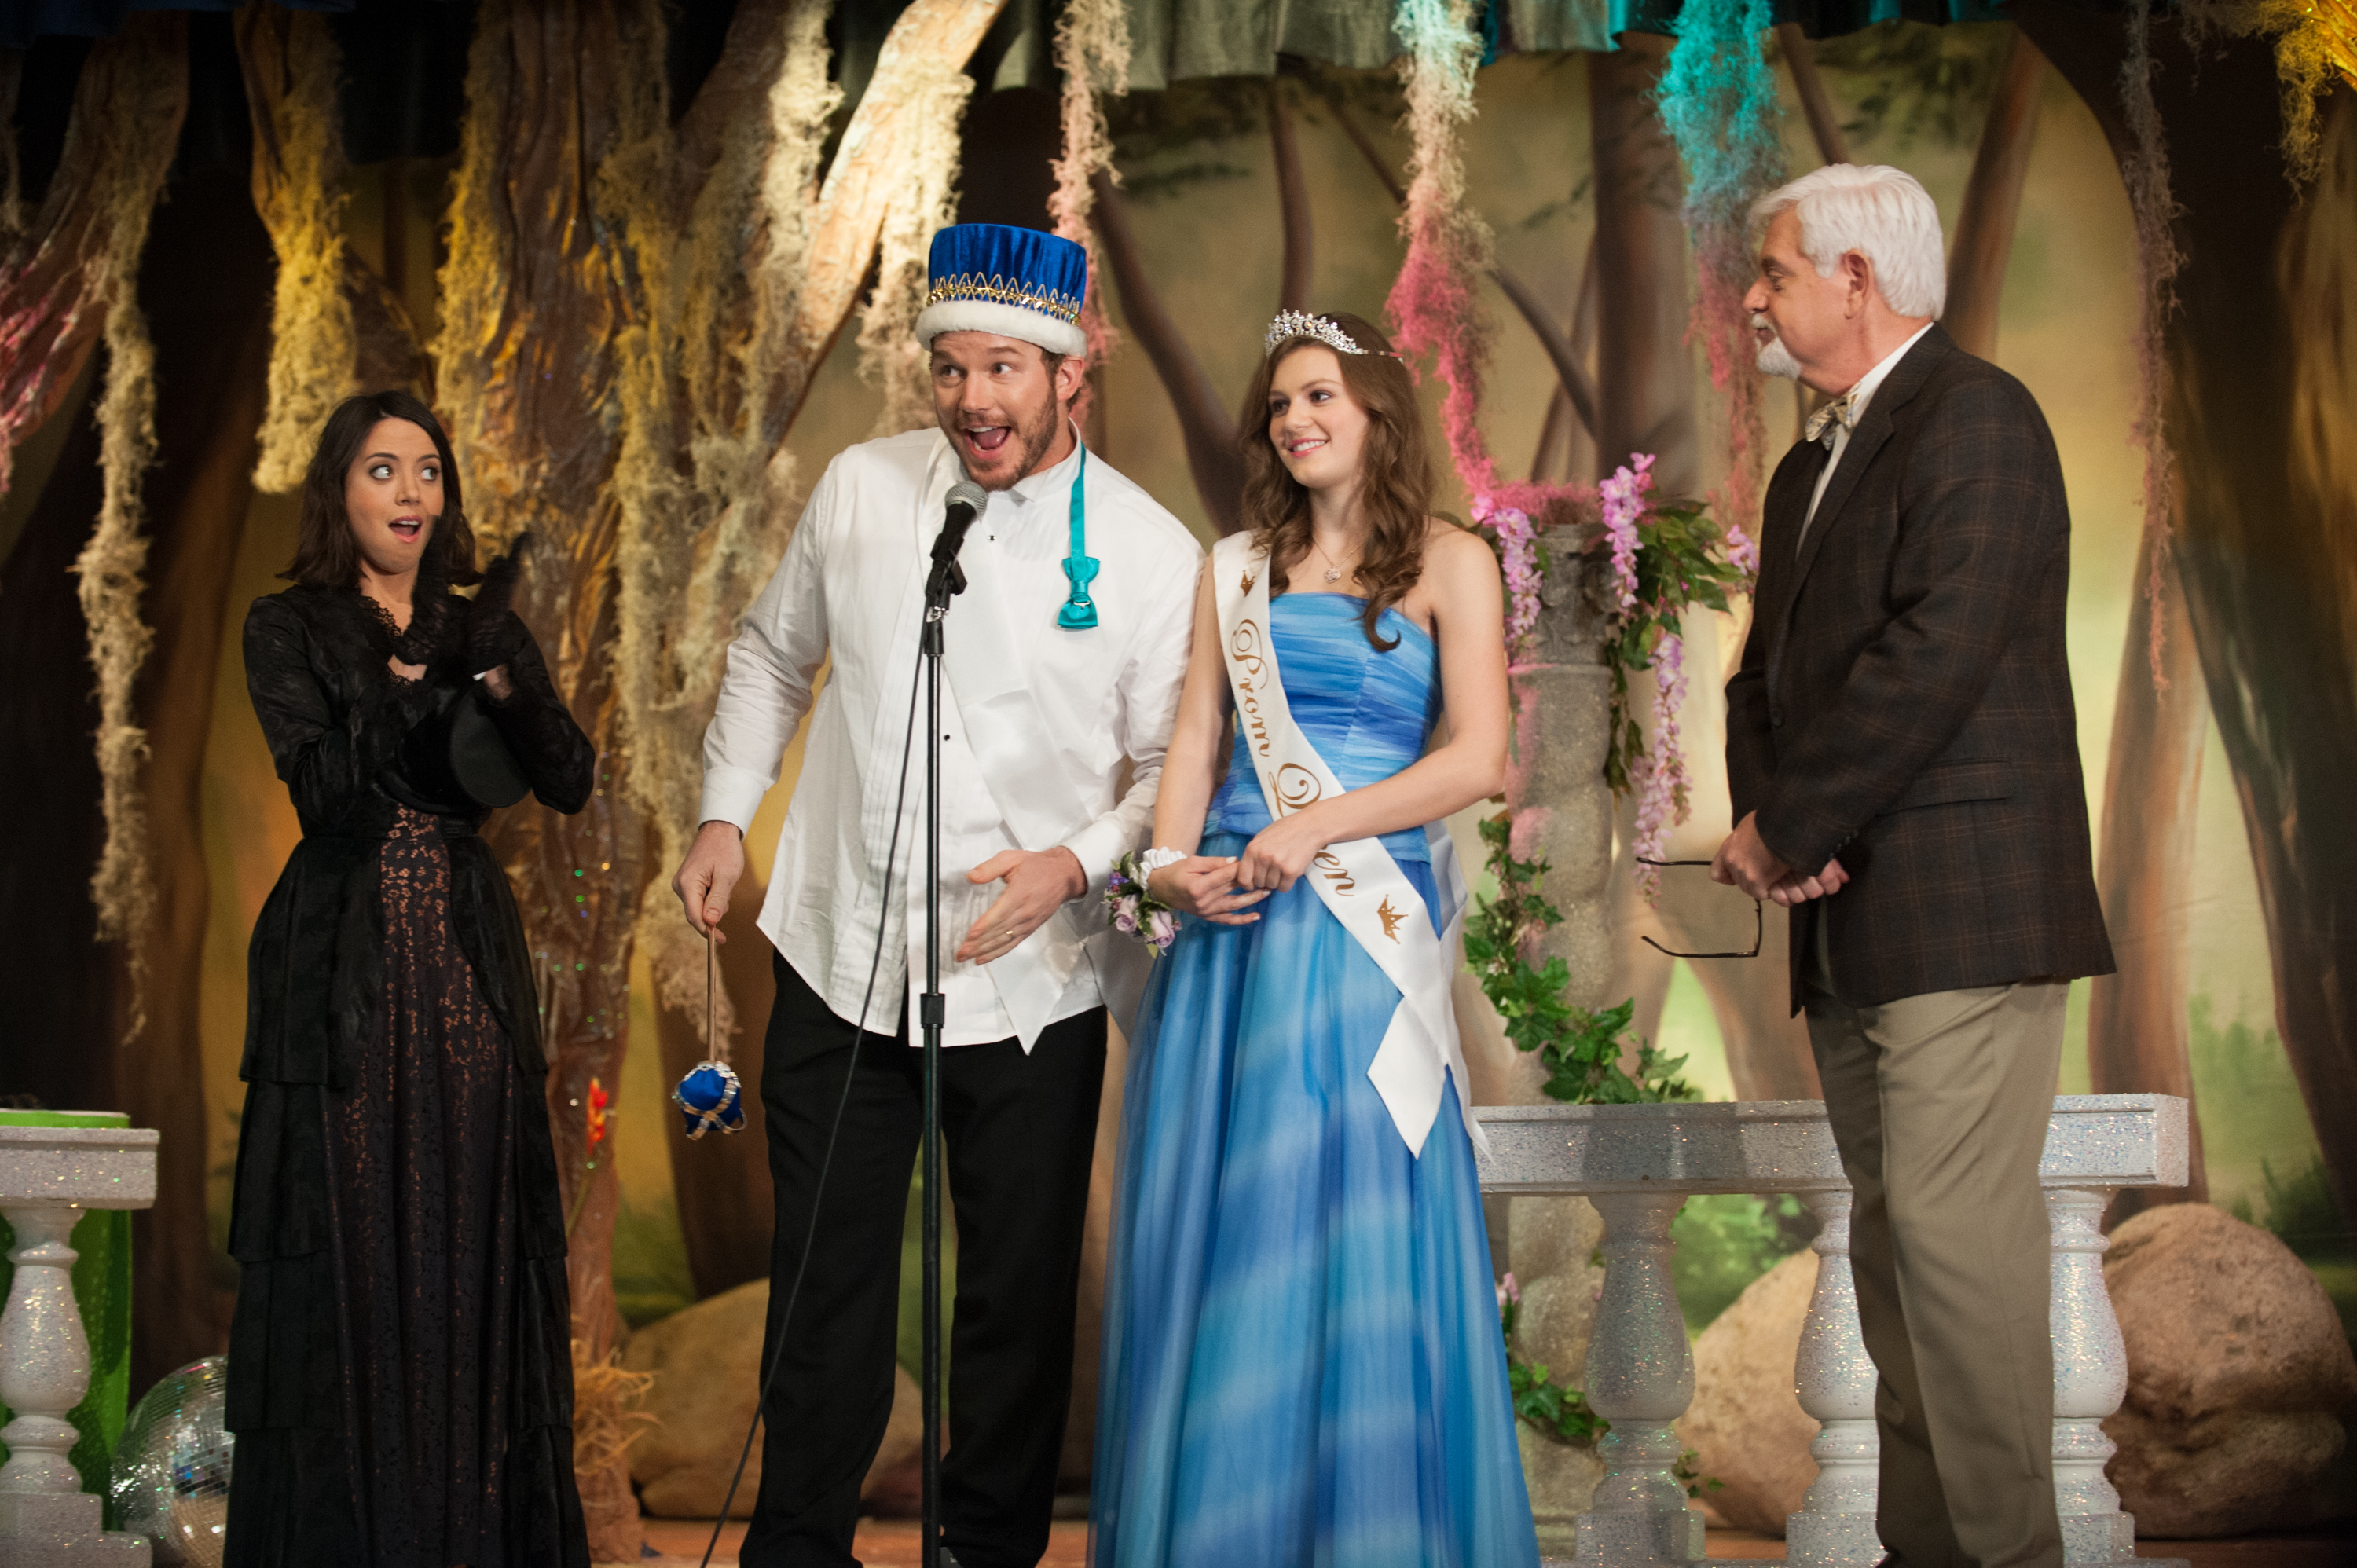 Parks and Recreation - Prom King Andy Dwyer gives speech